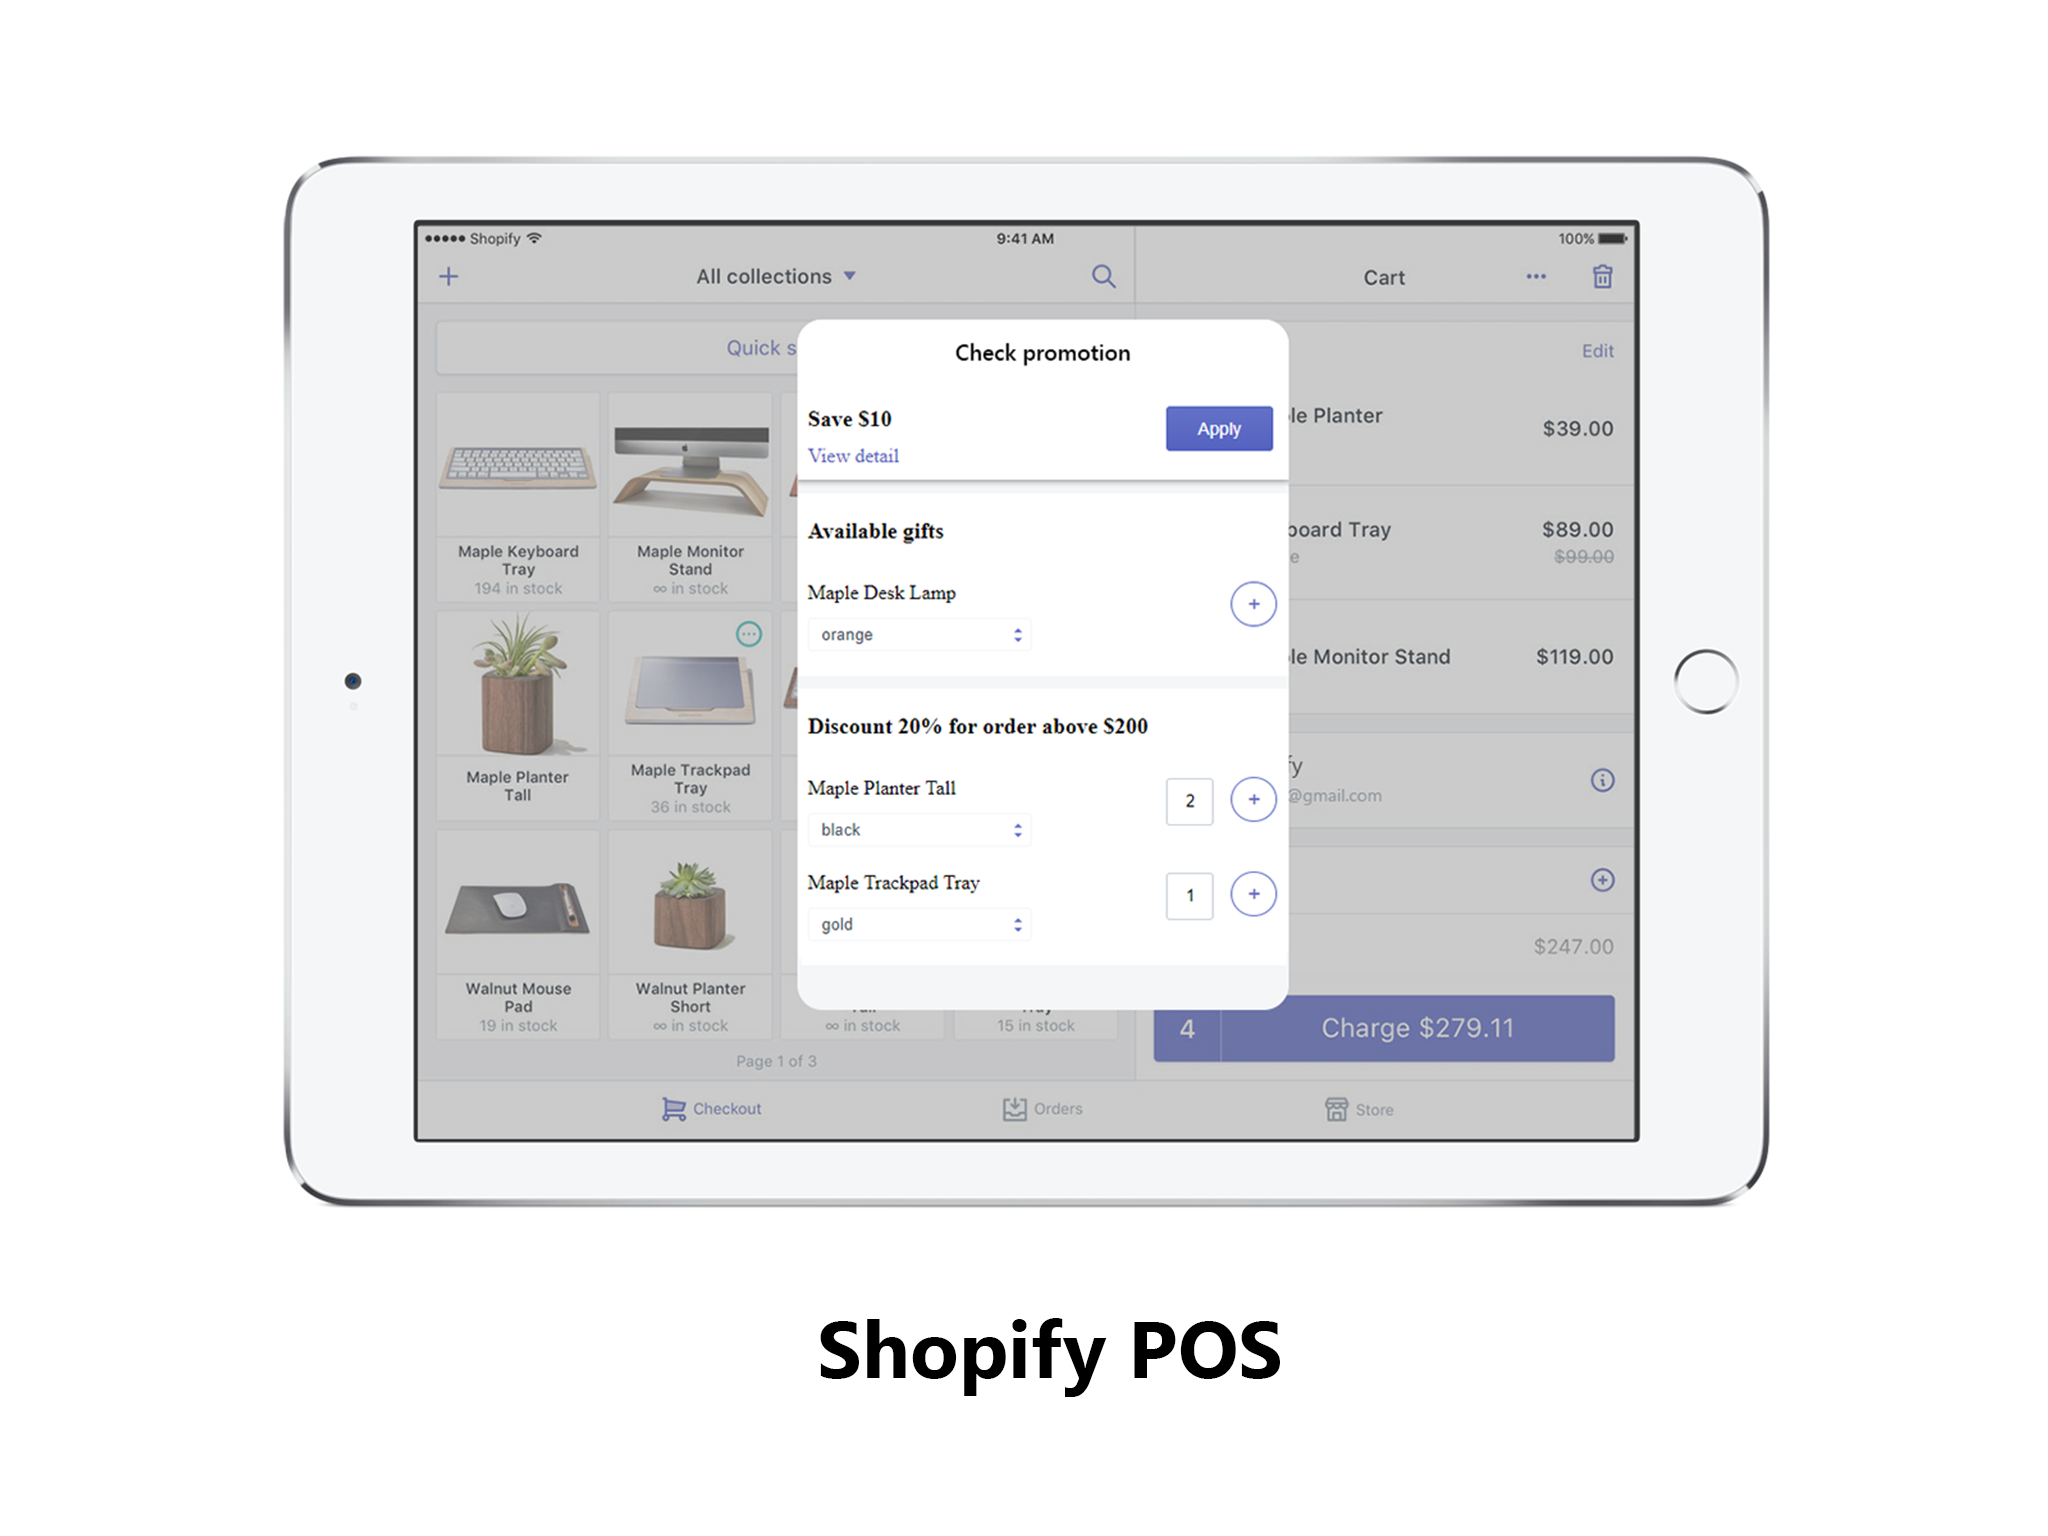 shopify pos promotion manager